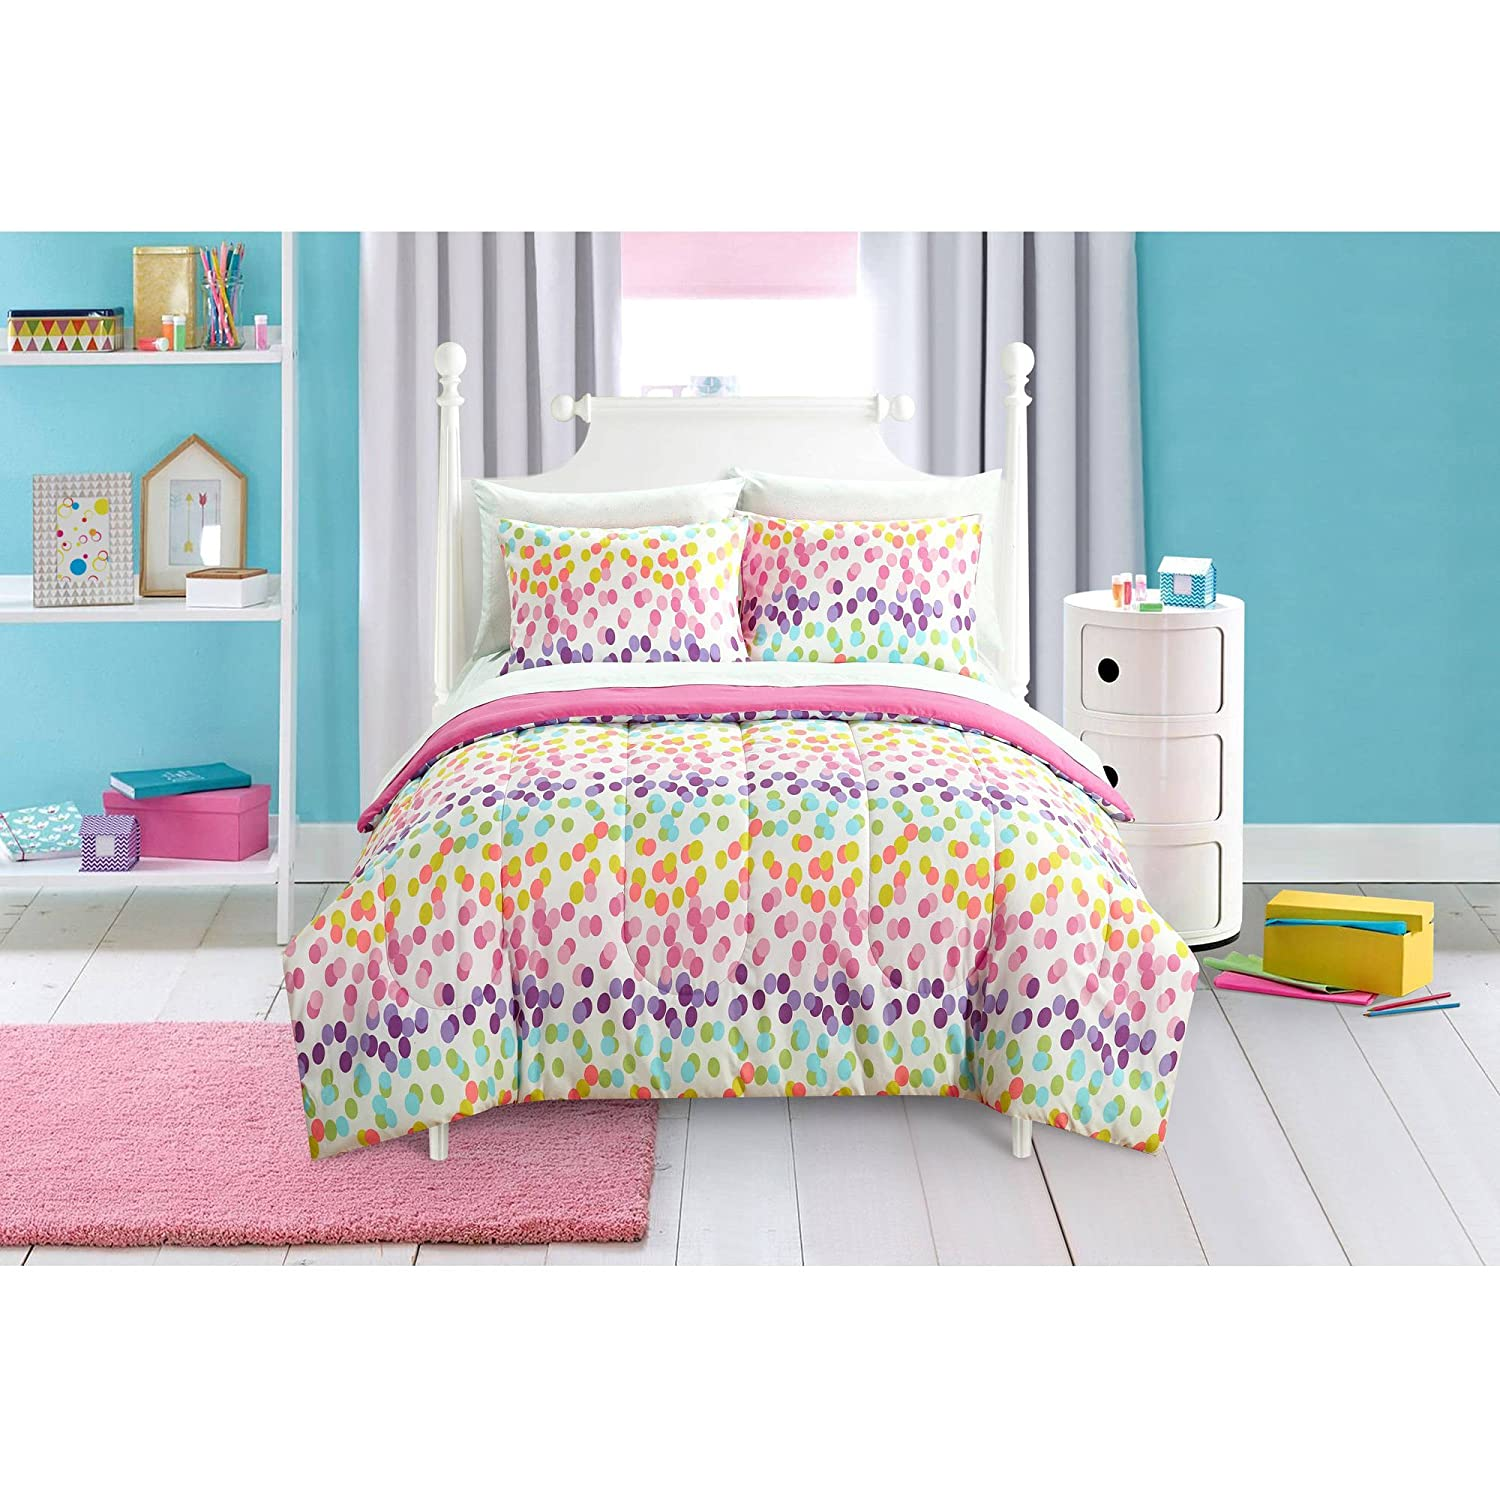 Beautiful, Super Comfortable, Machine Washable Mainstays Kids Spotty Rainbow Bed in a Bag Bedding Set, Twin